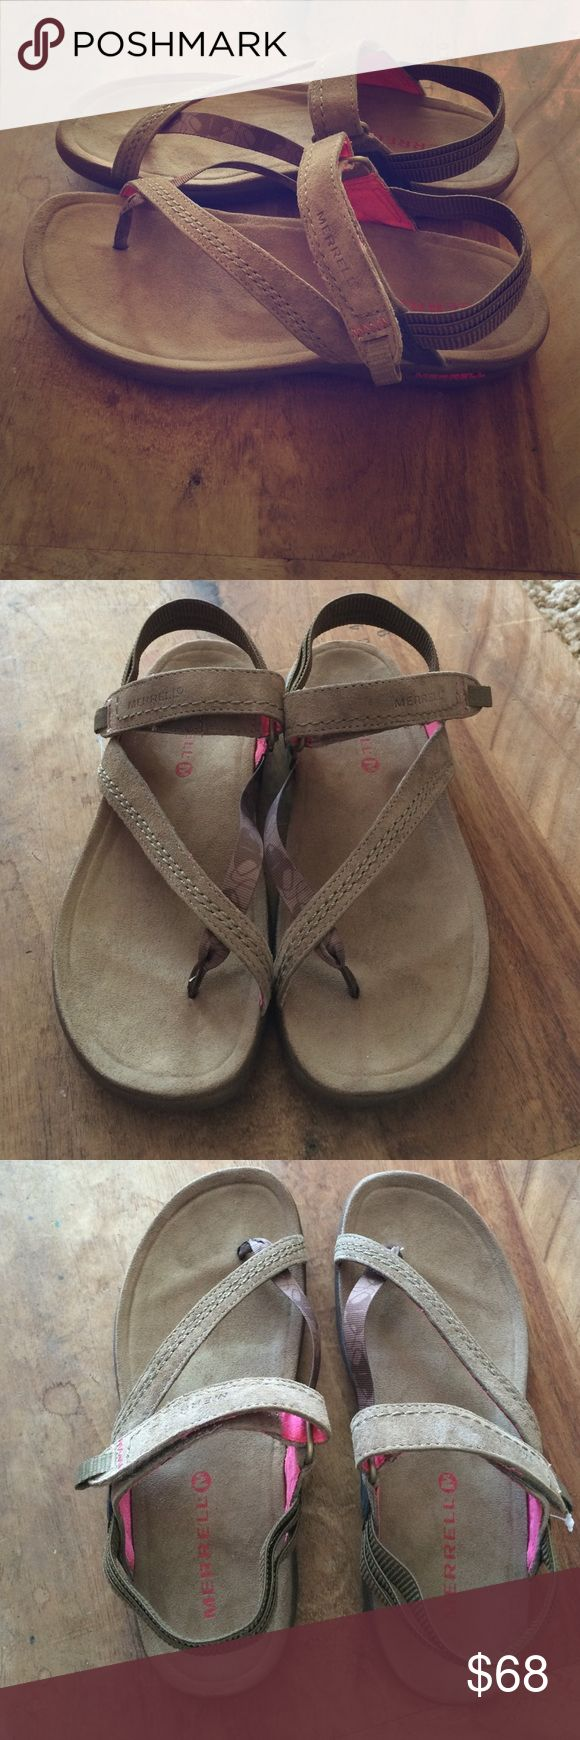 Best 25 Hiking Sandals Ideas On Pinterest Chaco Sandals